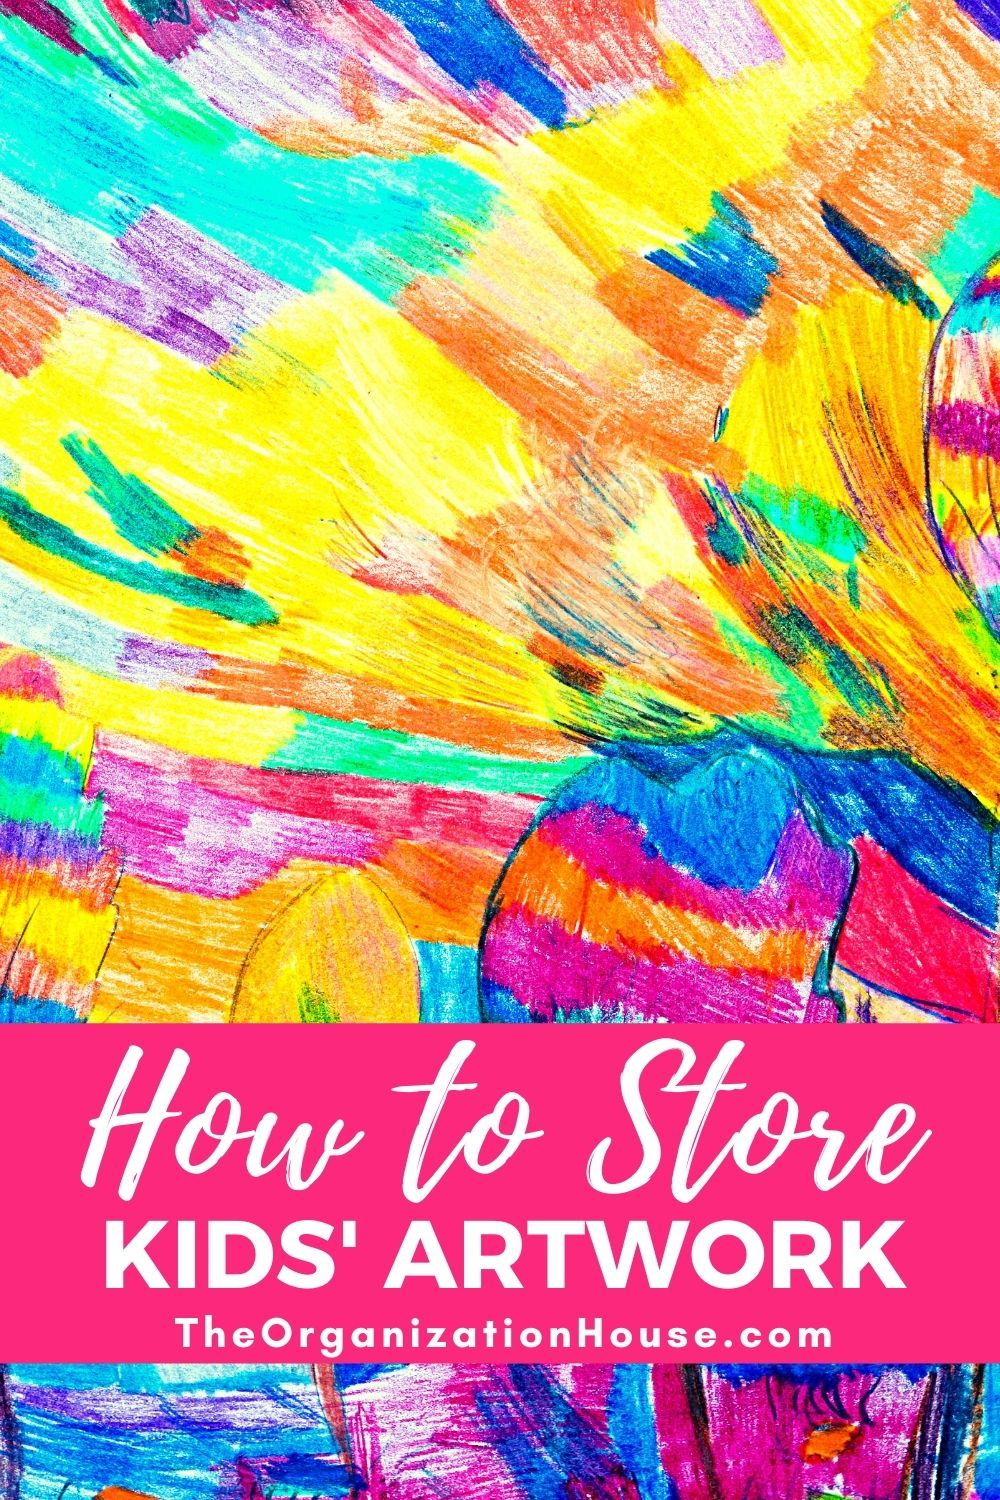 How to Store Children's Artwork